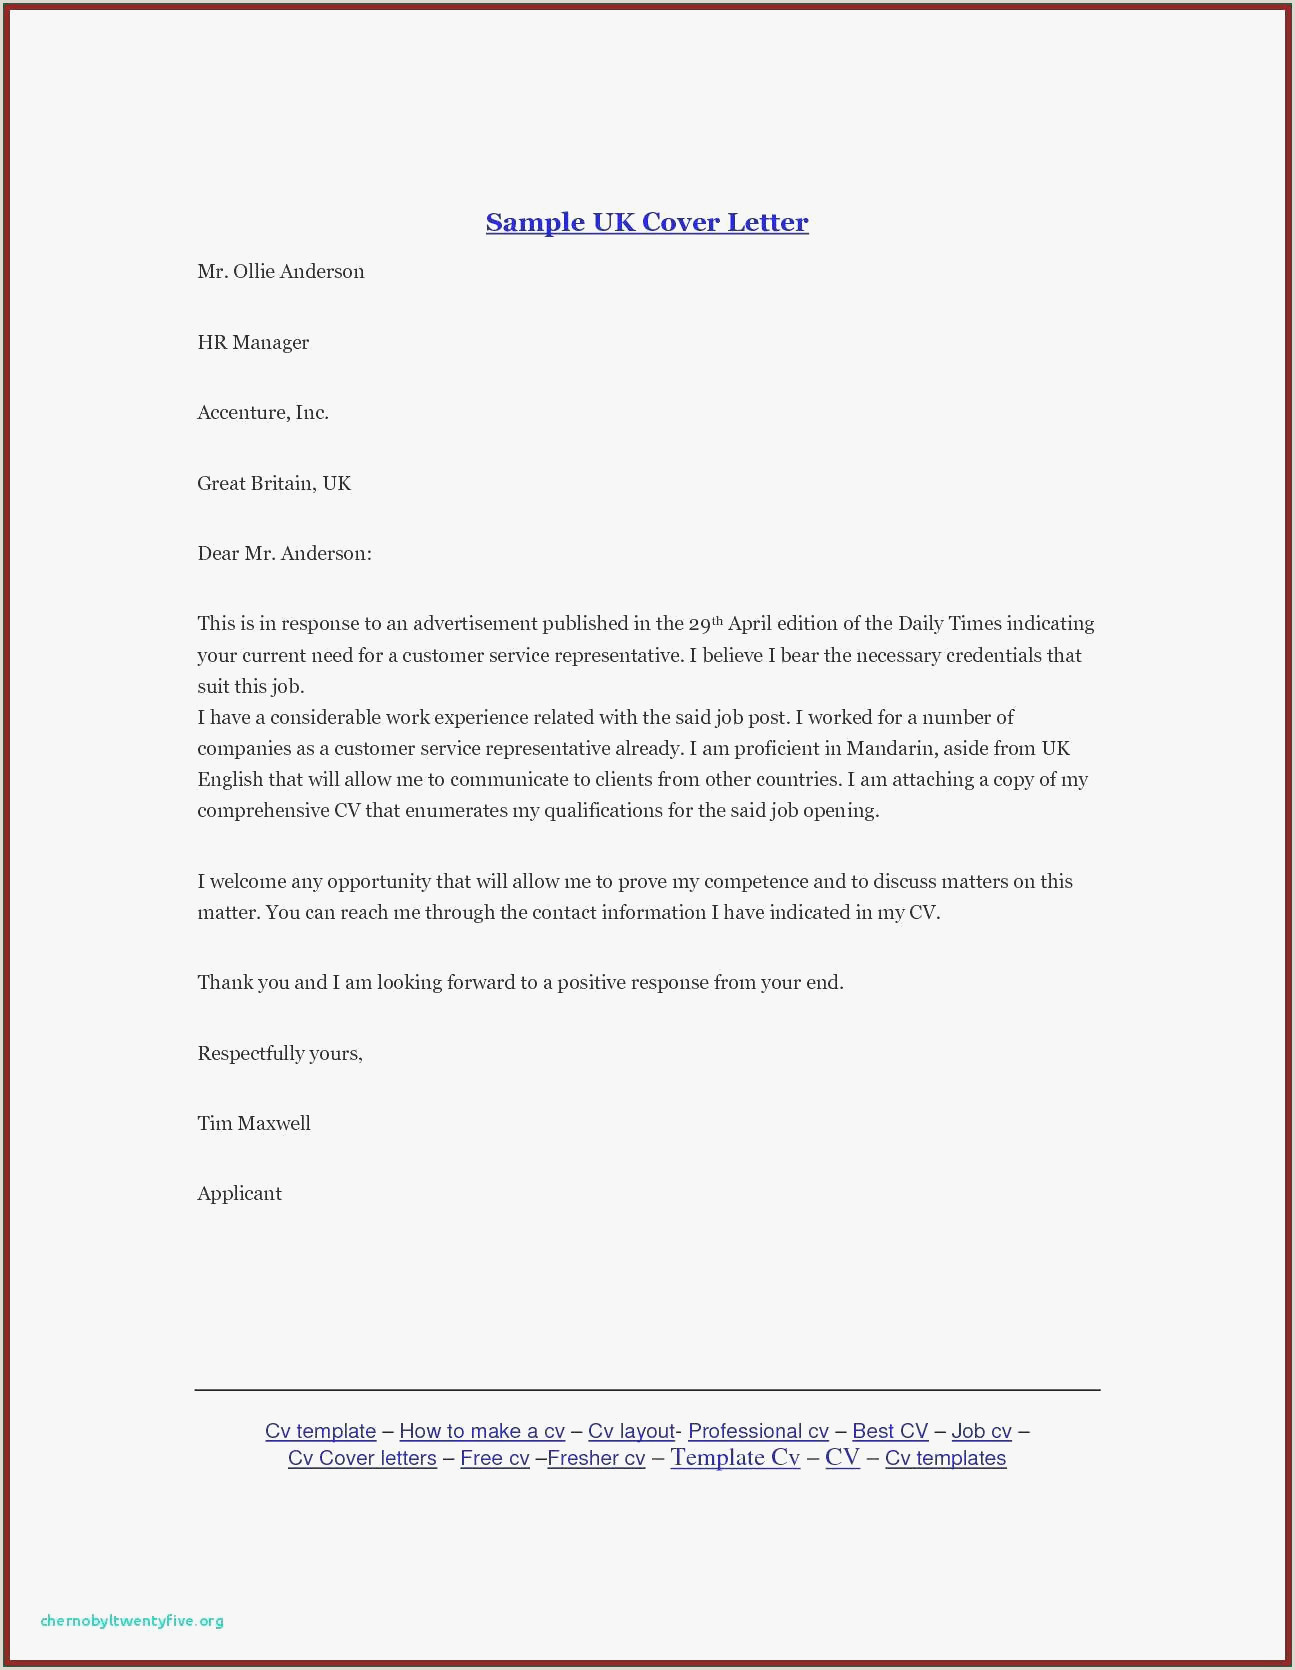 Electronic Cover Letters are Longer Than Traditional Paper Cover Letters. 10 Electronic Cover Letter Sample